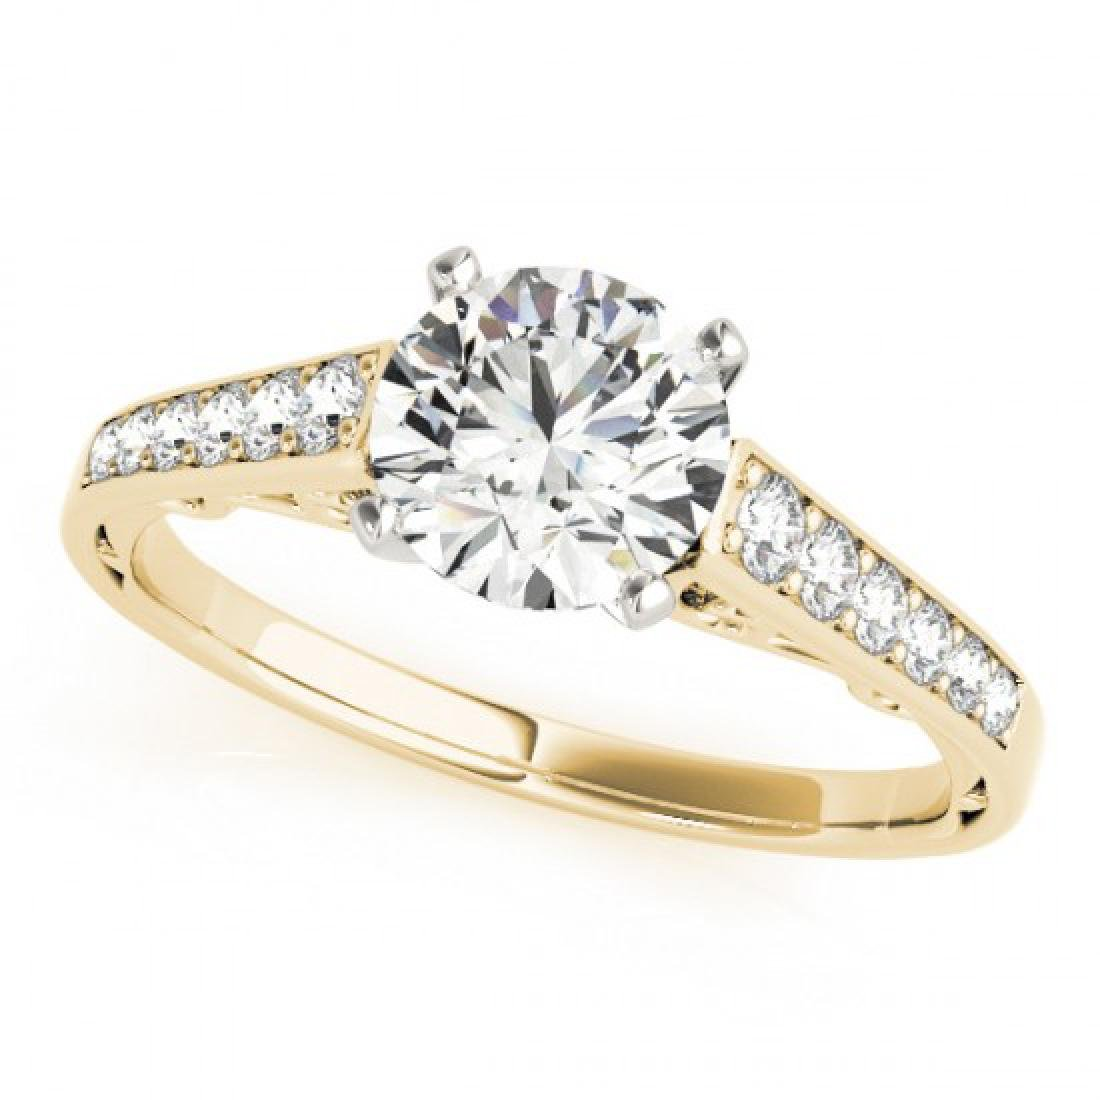 0.85 CTW Certified VS/SI Diamond Solitaire Ring 14K - 2